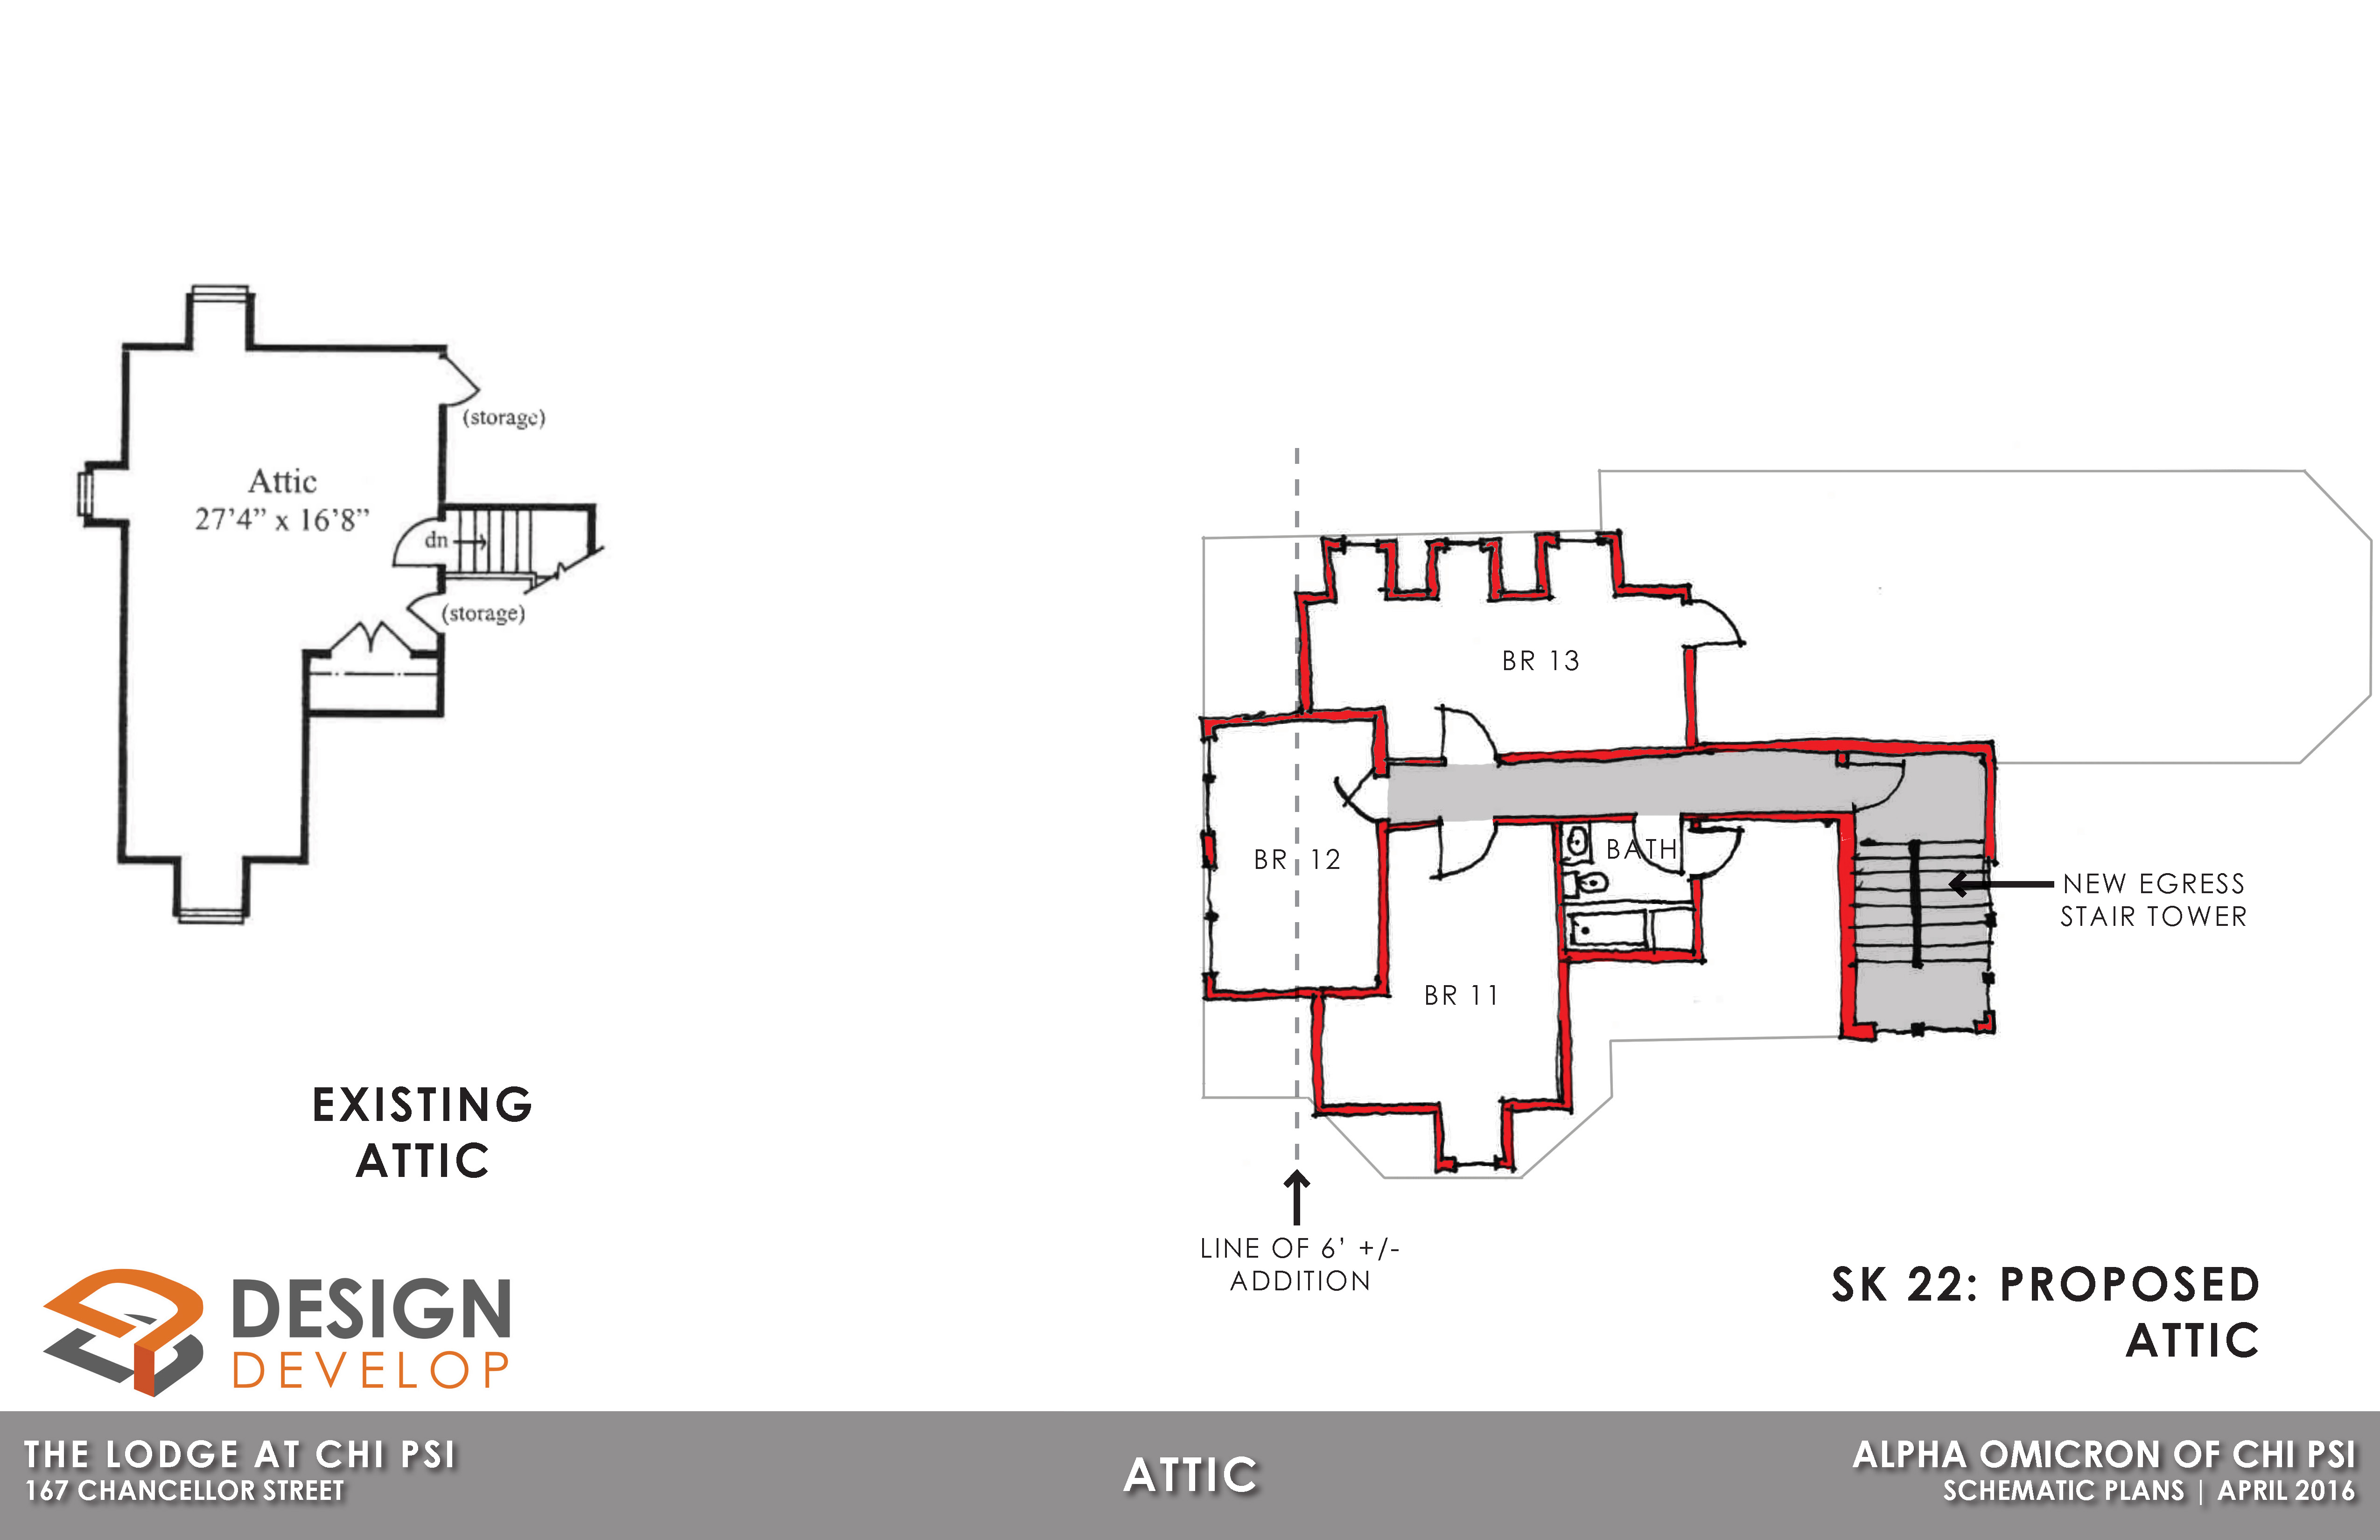 Attic Level Existing and Proposed